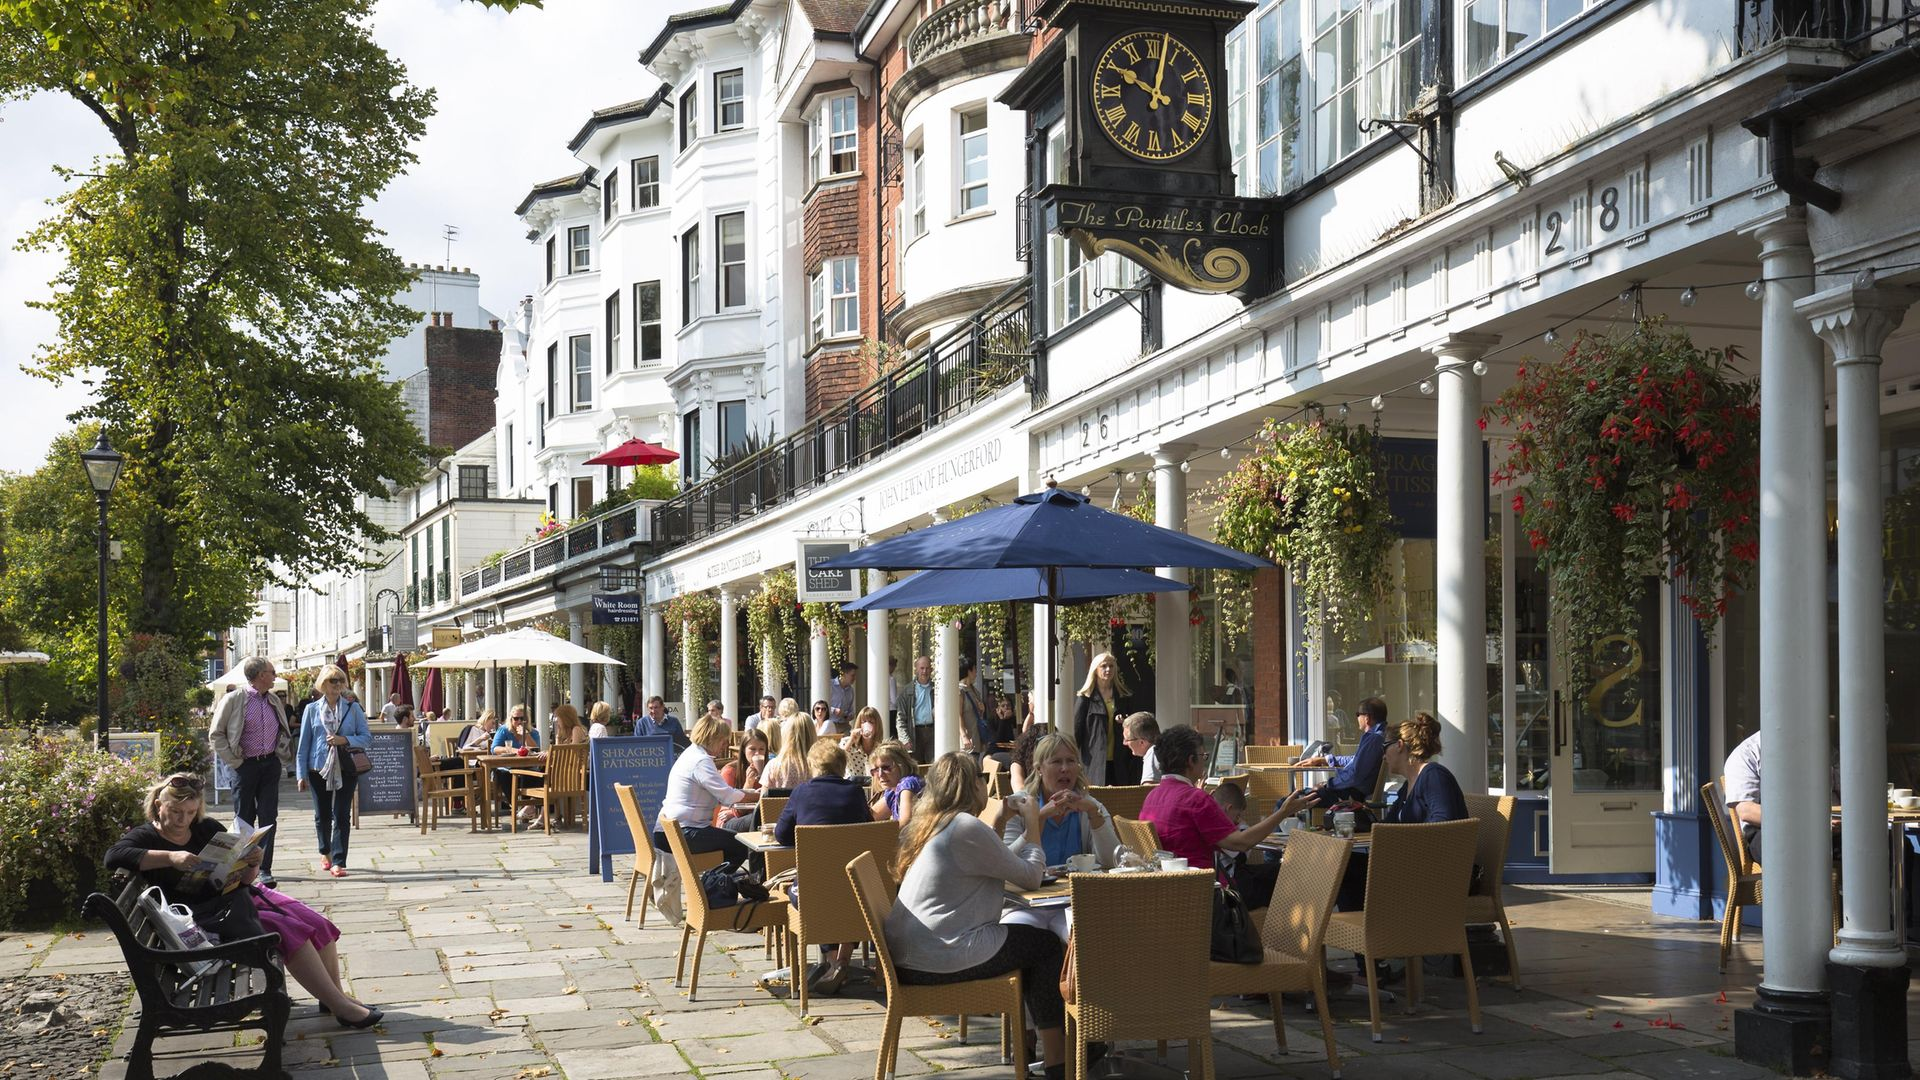 The Pantiles shopping area of Tunbridge Wells - Credit: Photo by Tim Graham/Getty Images